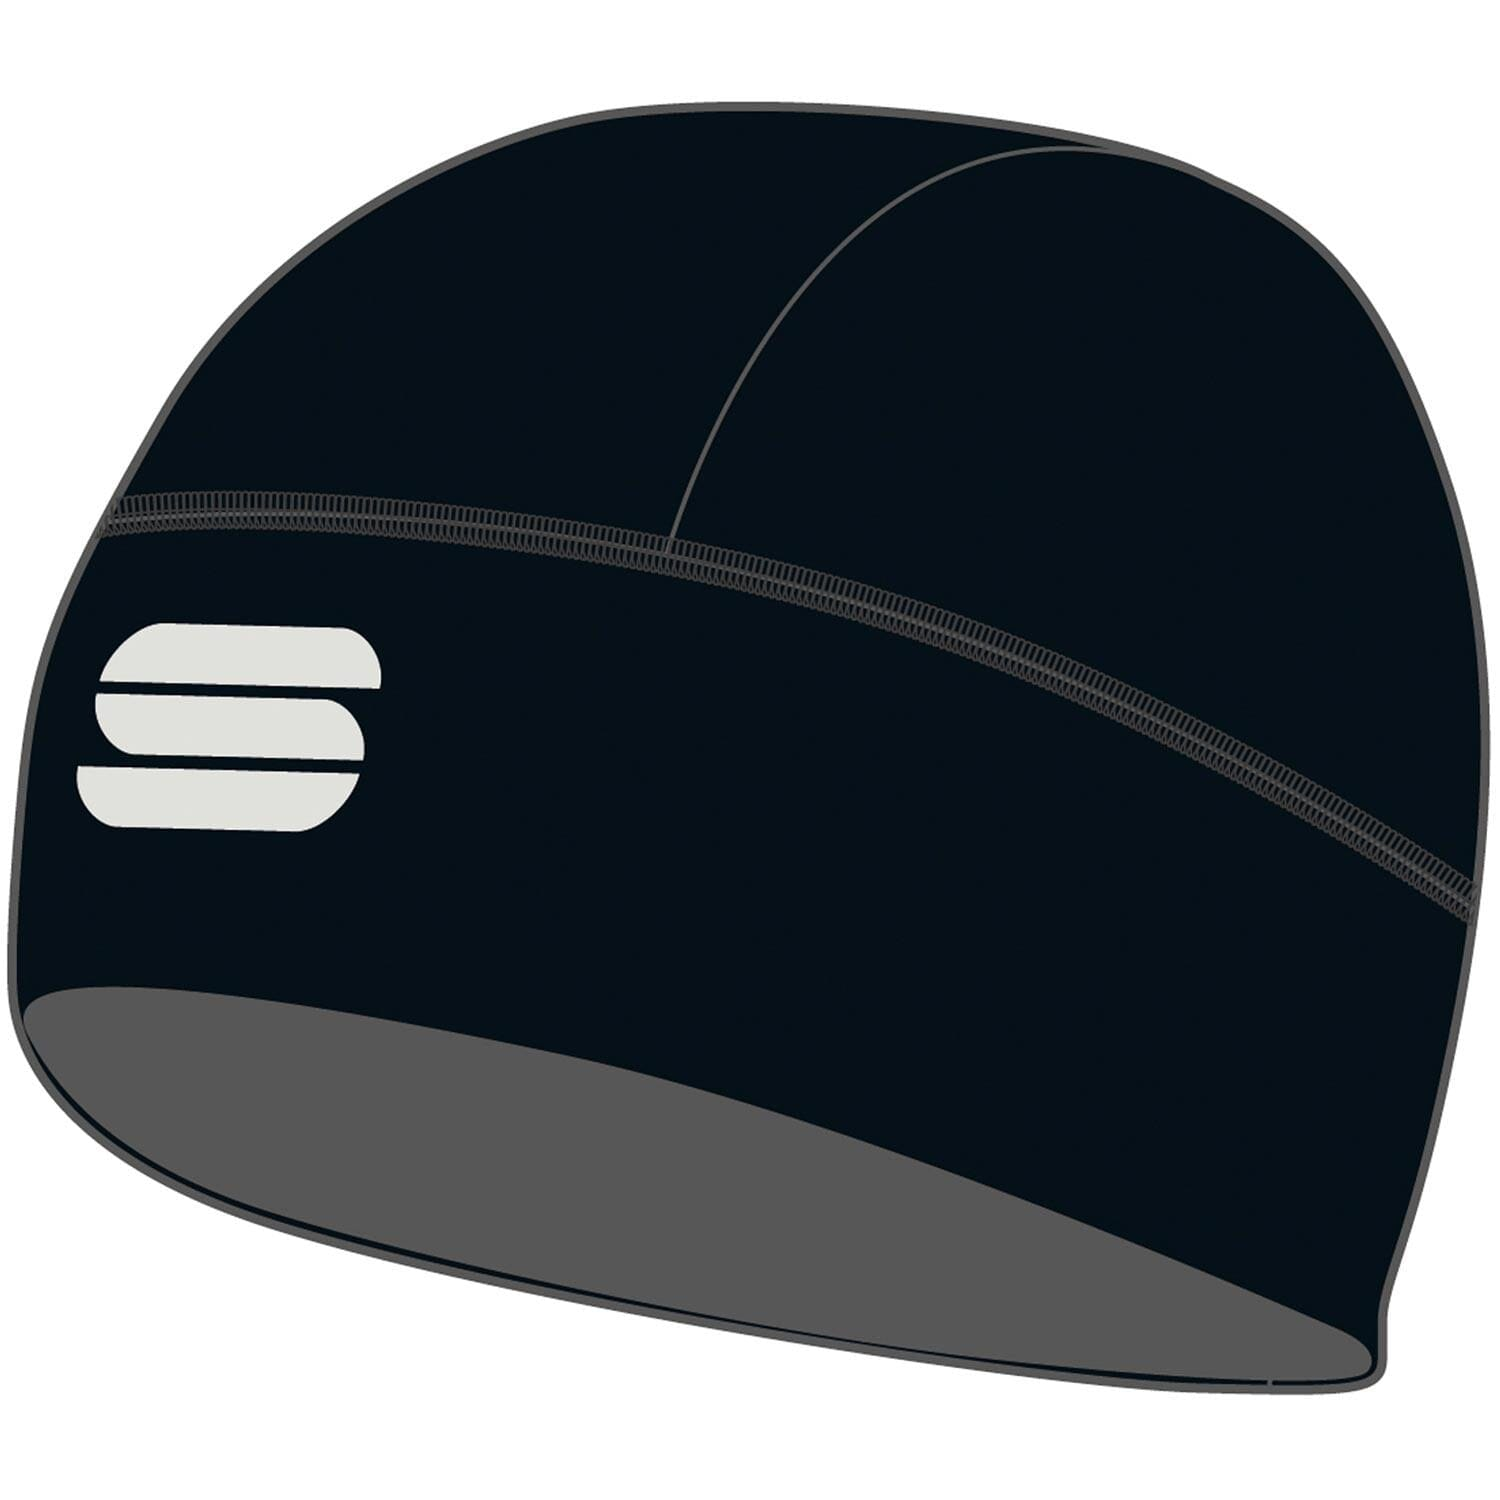 Sportful-Sportful Matchy Underhelmet-Black-UNI-SF210750028-saddleback-elite-performance-cycling